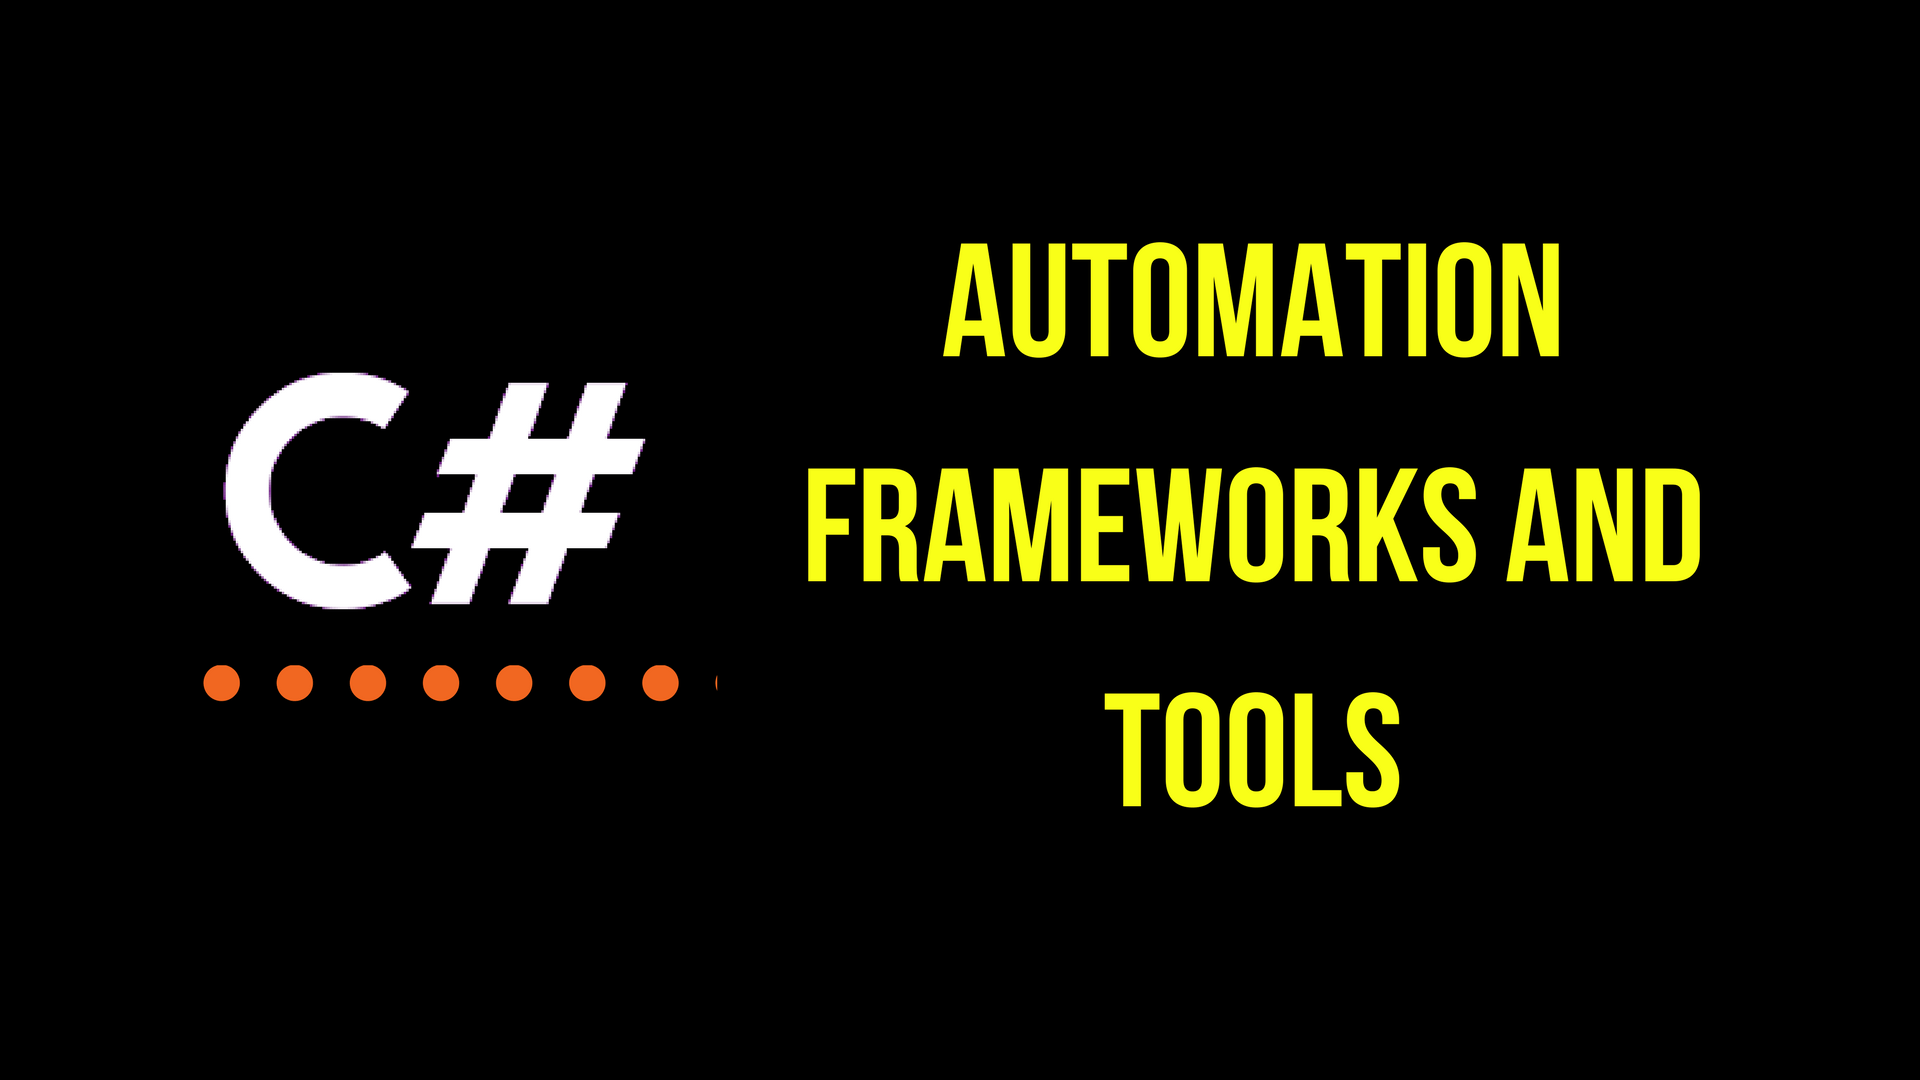 Automation Frameworks and Tools for C#